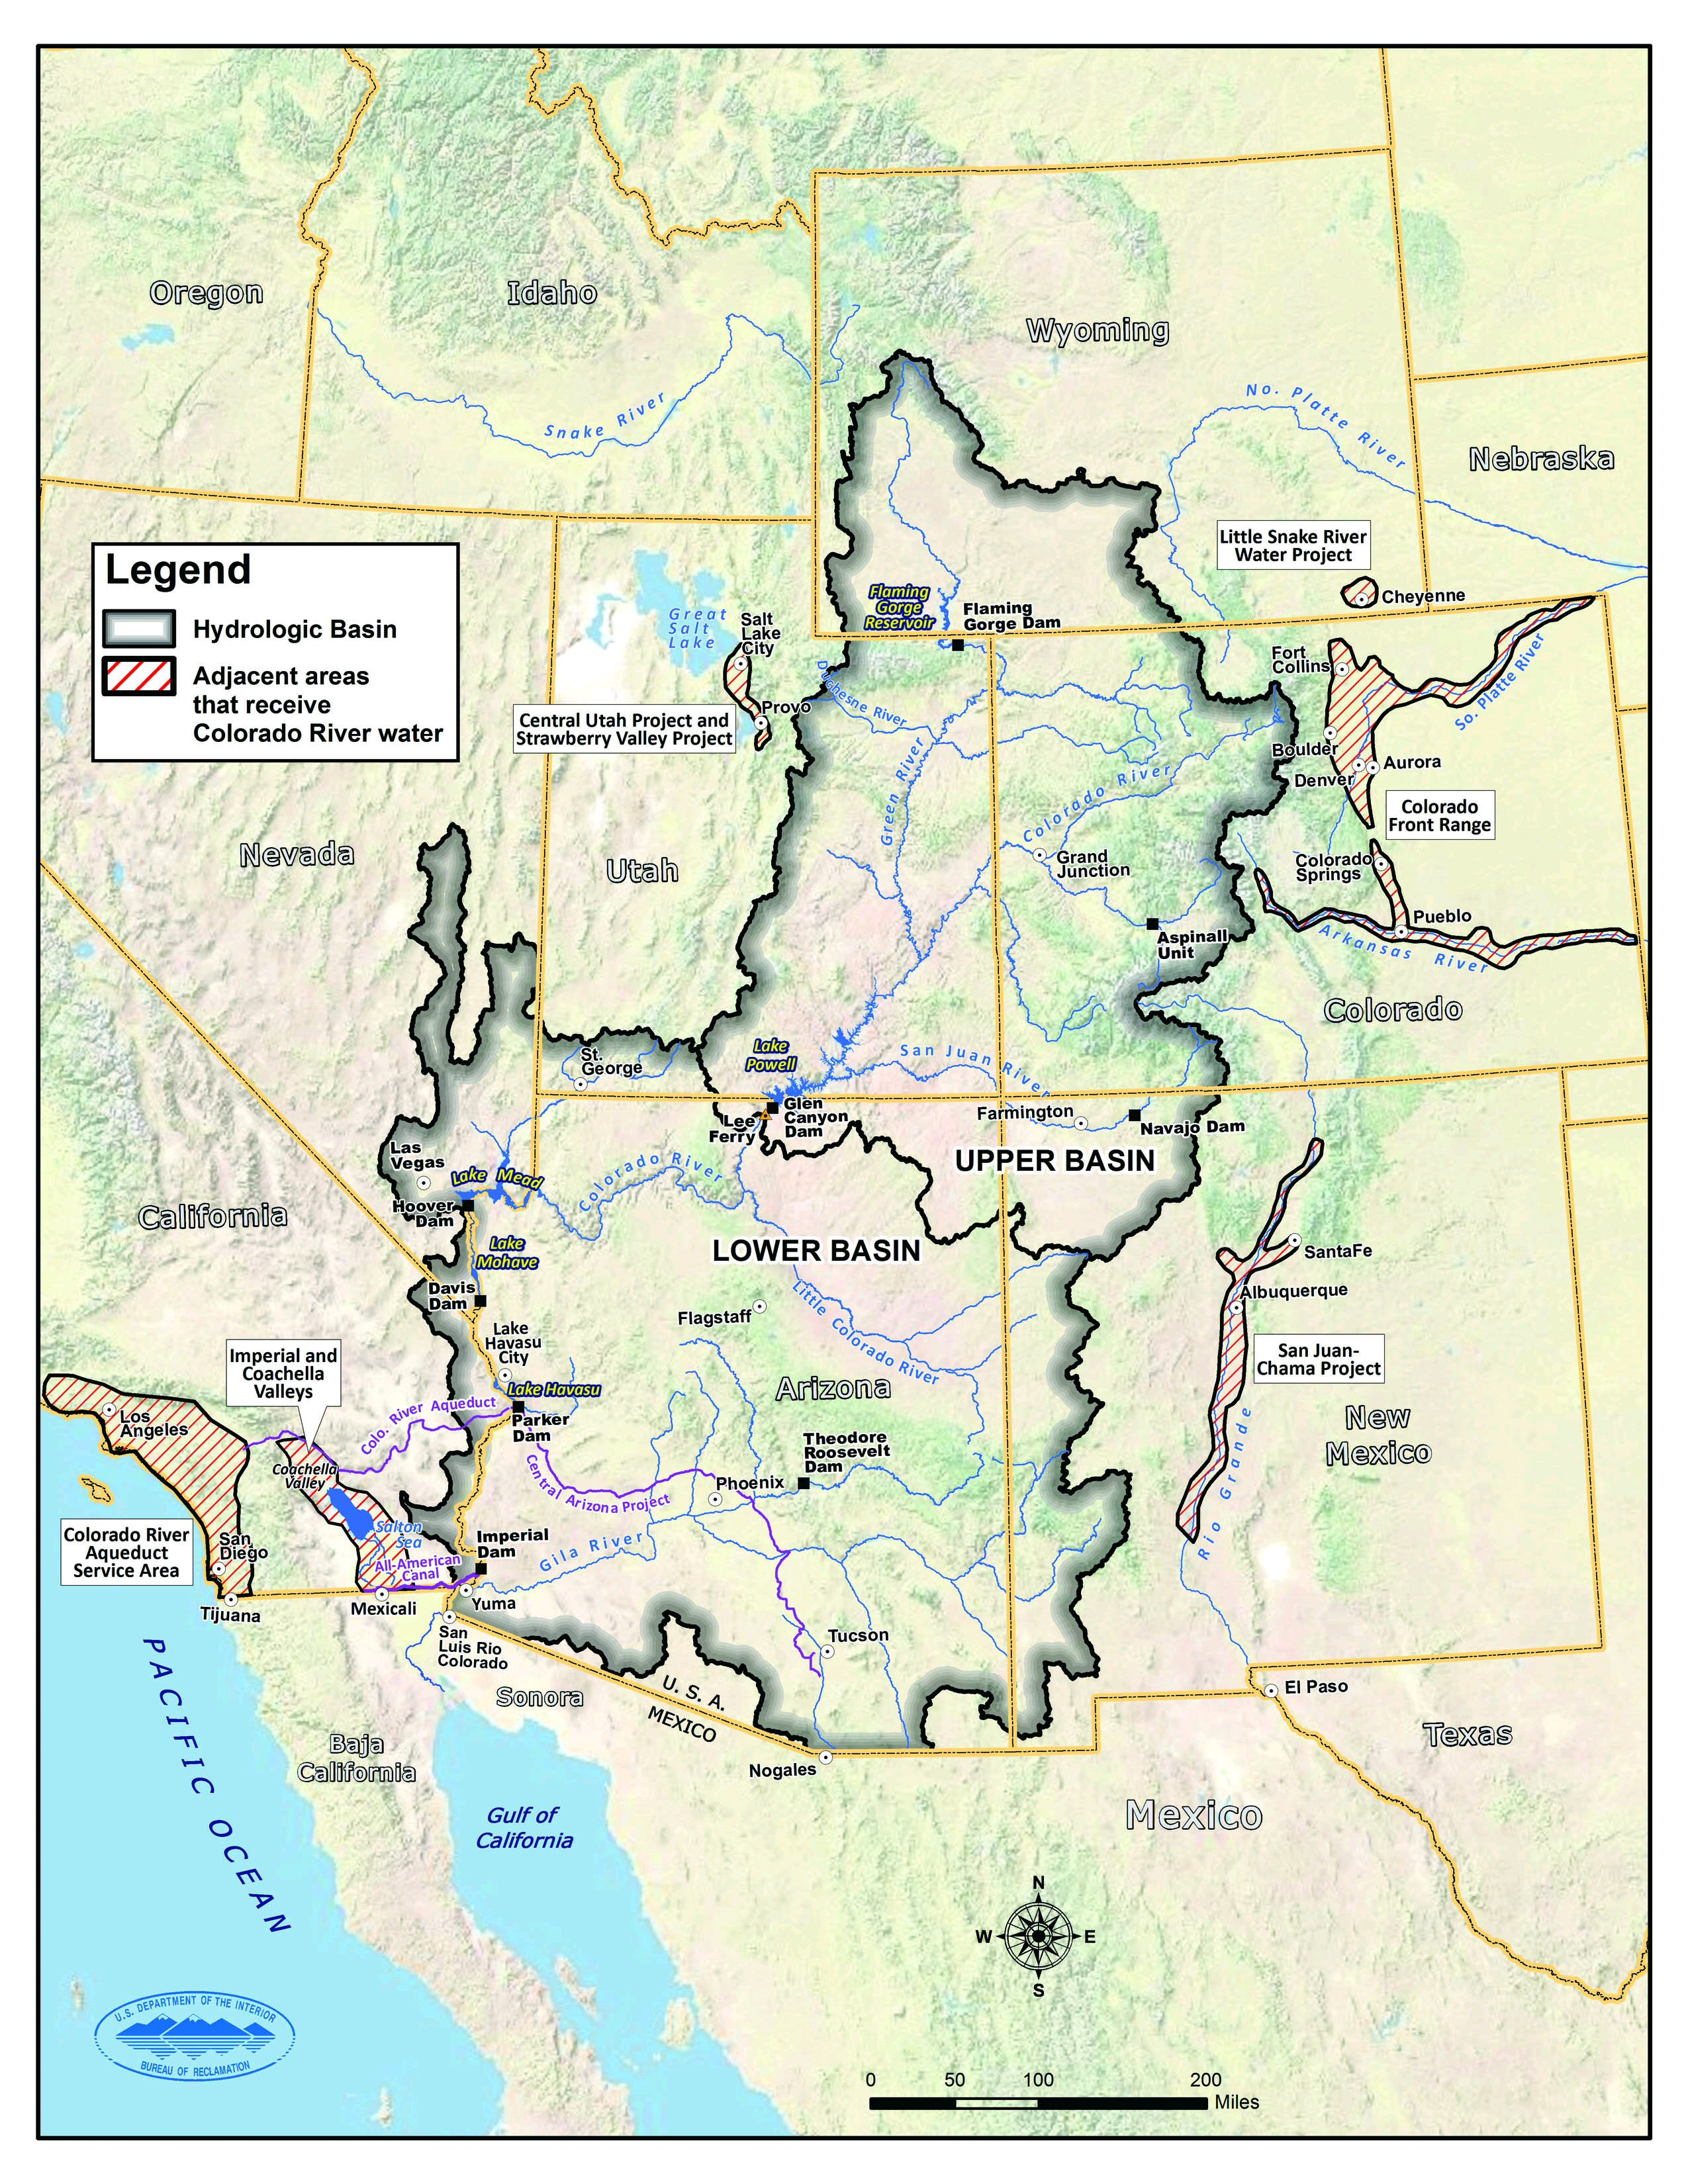 Map of upper and lower Colorado River basins | Image courtesy of Bureau of Reclamation, St. George News